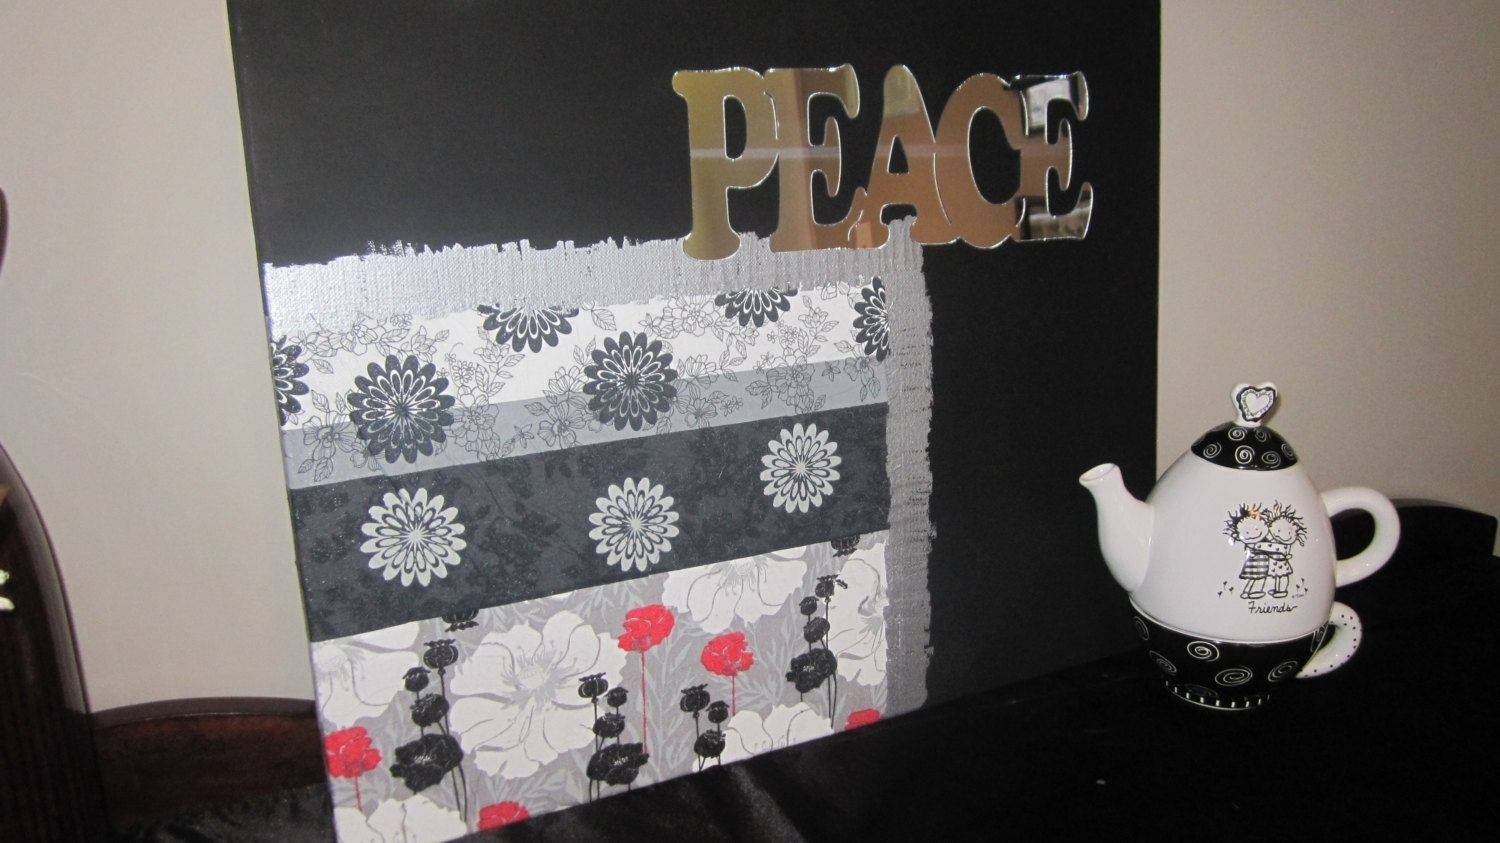 Handmade Peace And Love Wall Art Napkins Decoupage On Canvas 20 Intended For 2017 Decoupage Wall Art (View 13 of 30)